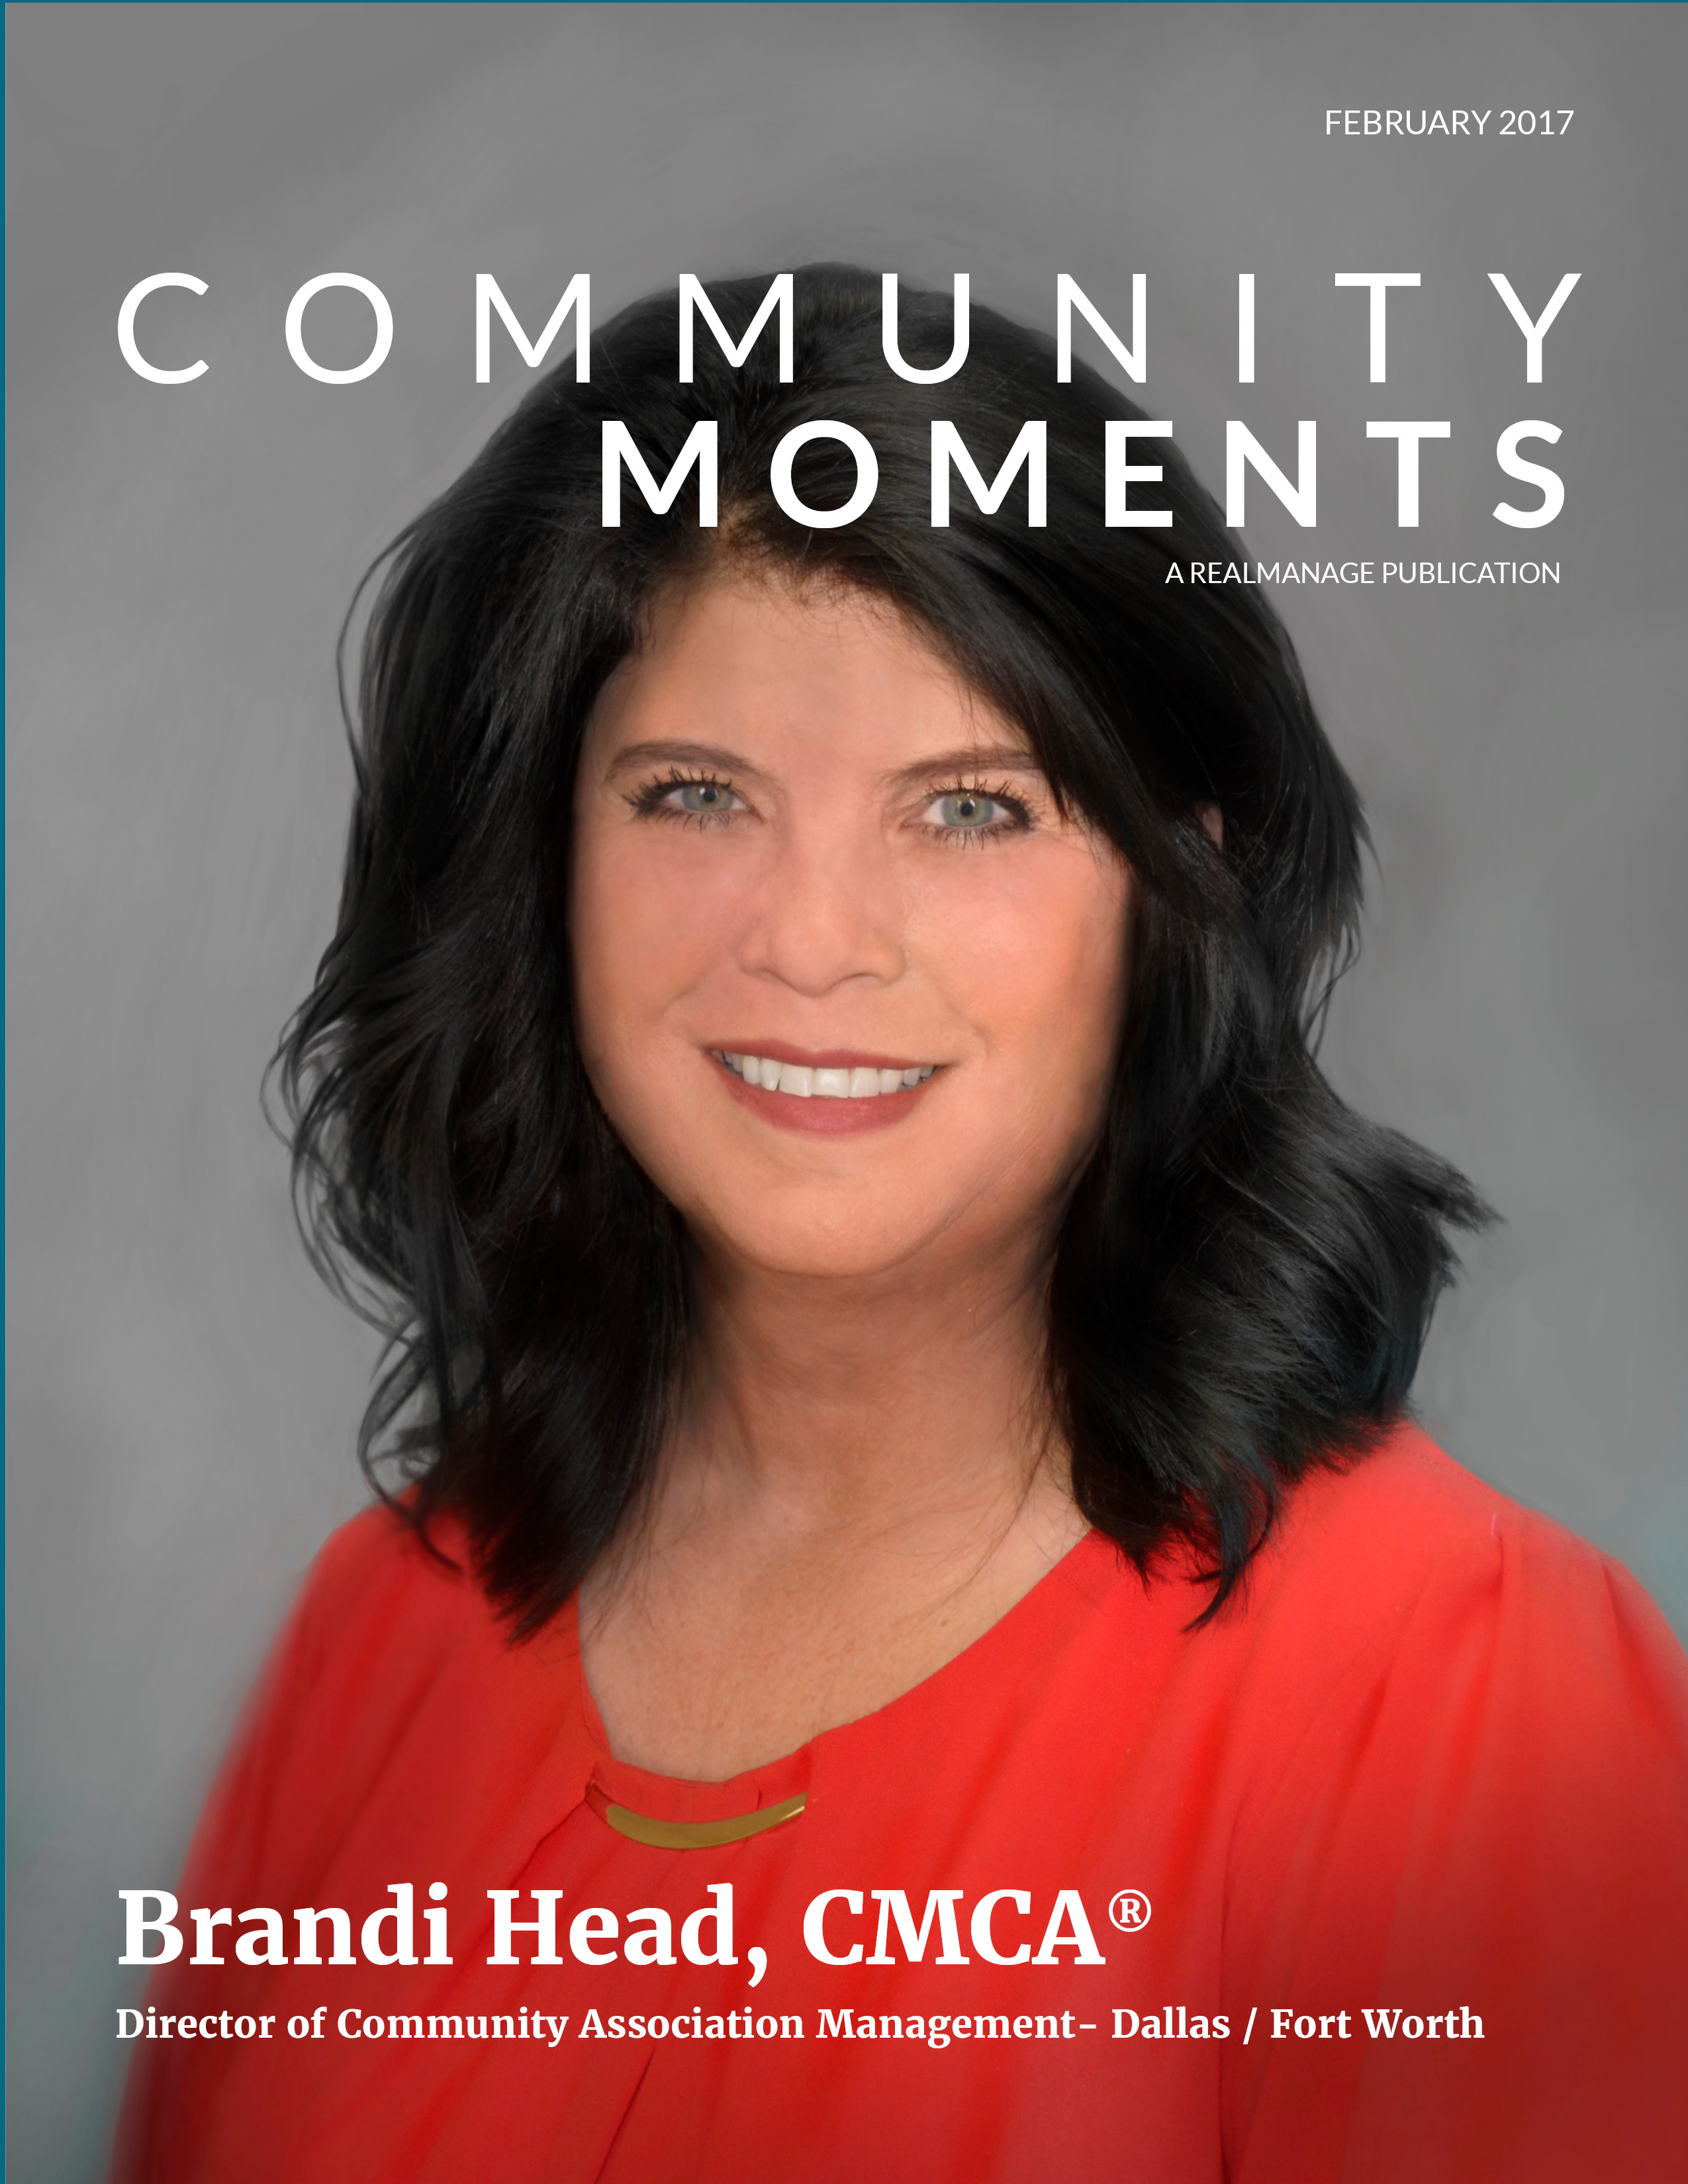 RealManage Community Moments Magazine - February